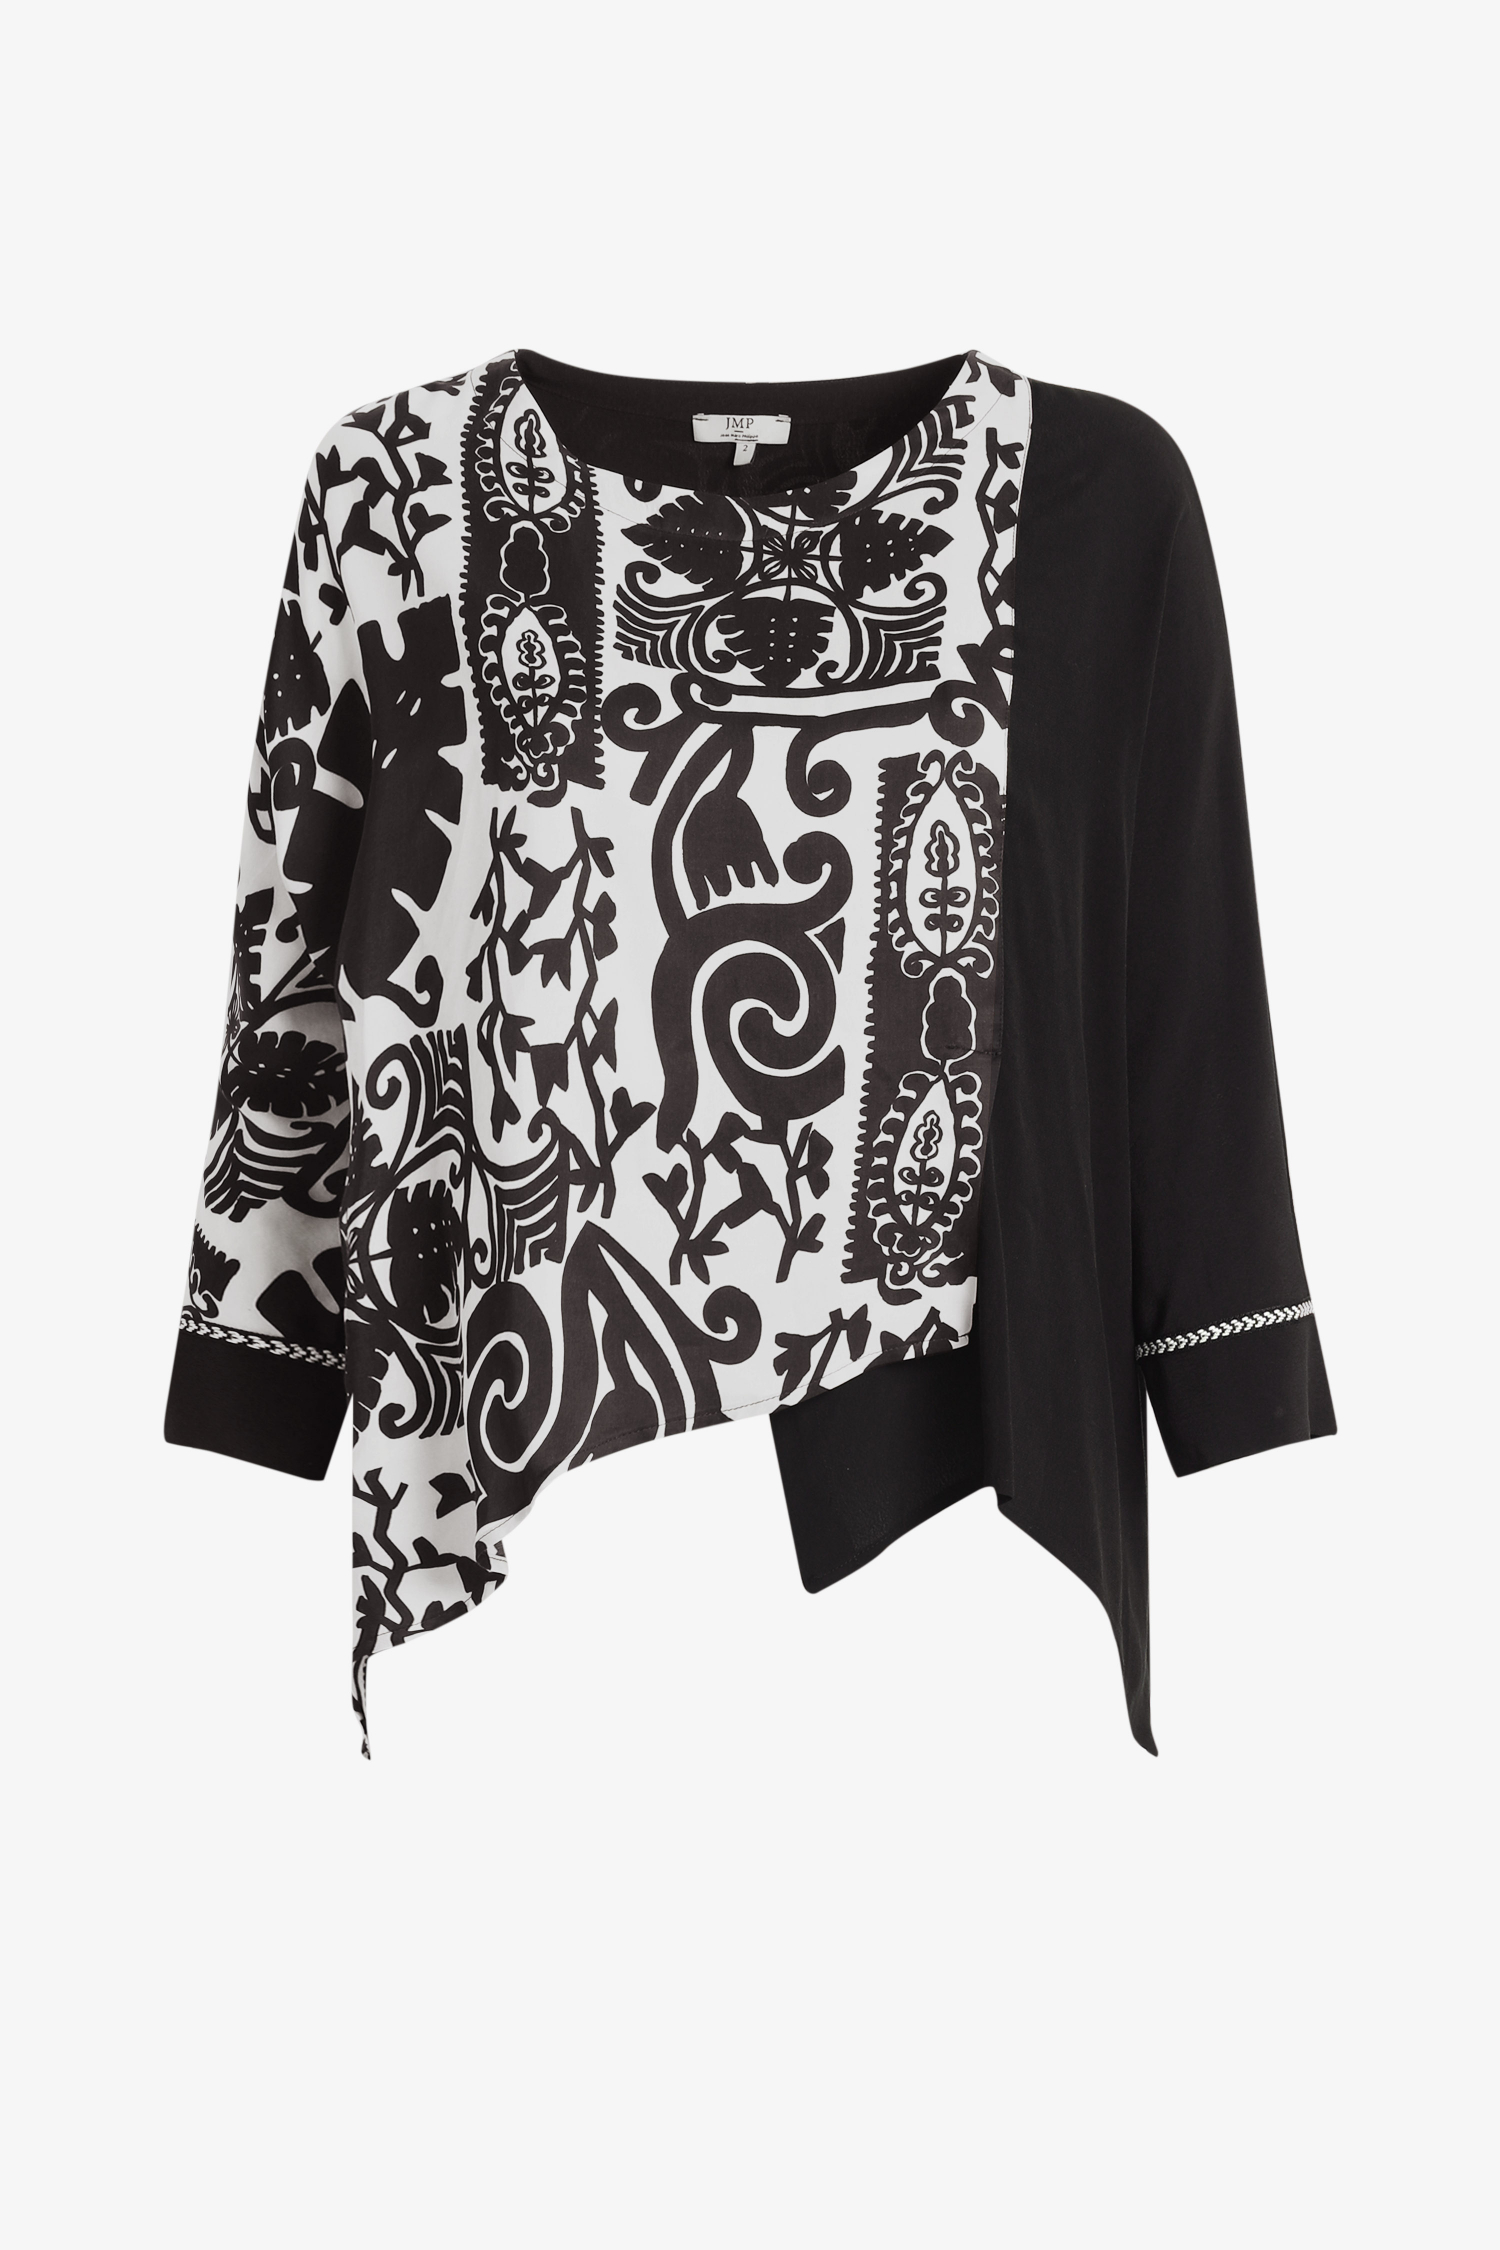 Oversized bi-color tunic (shipping October 10/15)